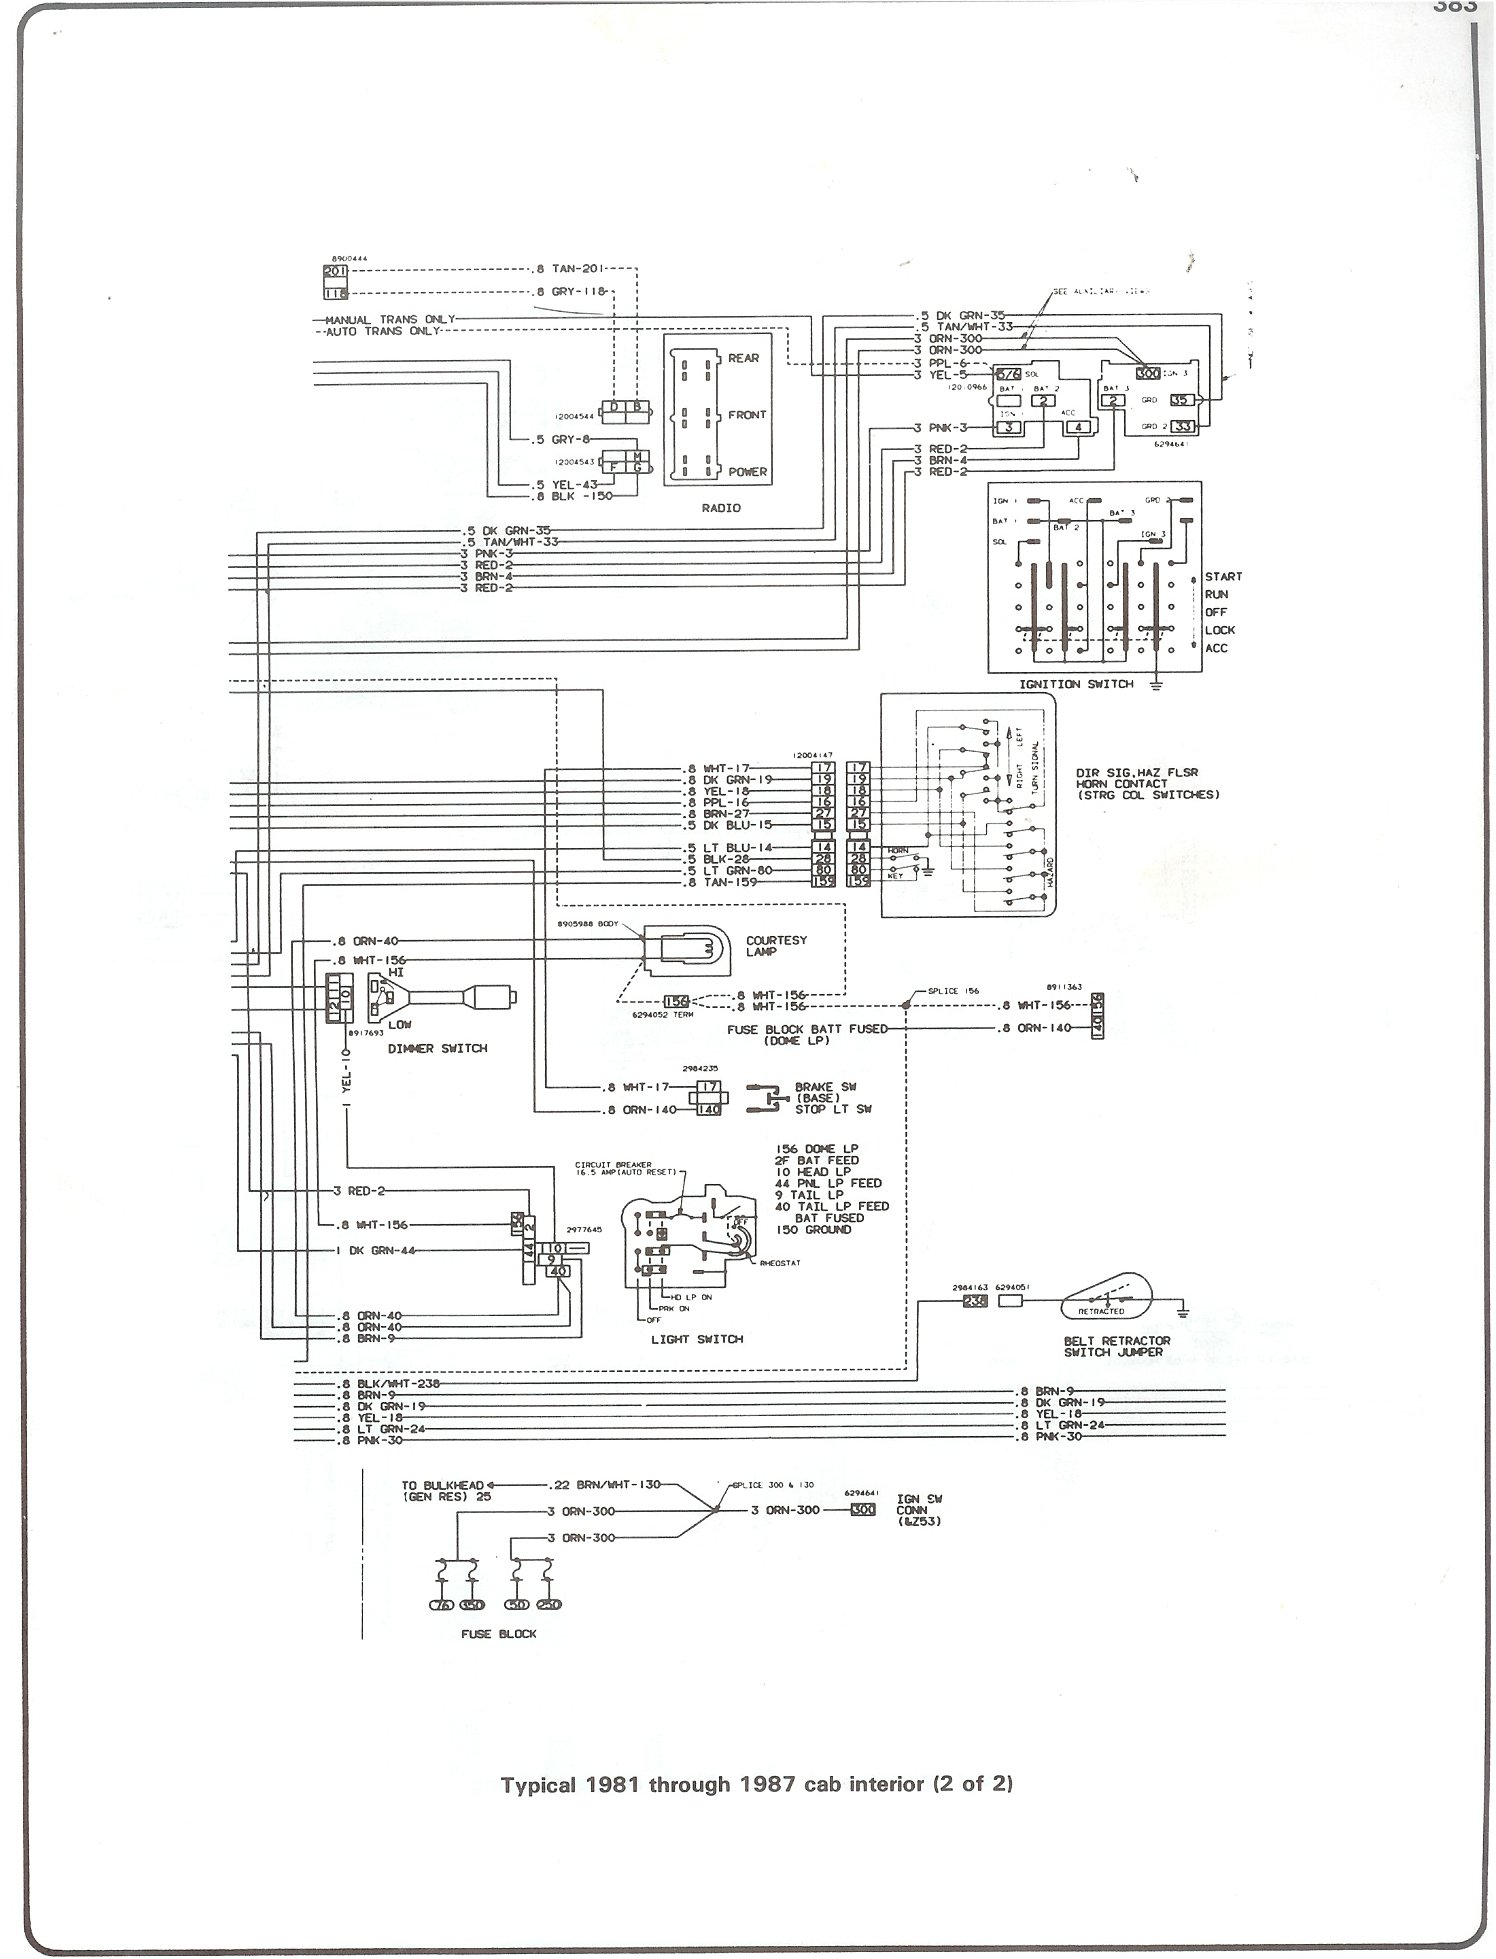 Fuse Diagram For 2001 F250 V1 0 Wiring Library Chevy Truck Box Complete 73 87 Diagrams Rh Forum 87chevytrucks Com